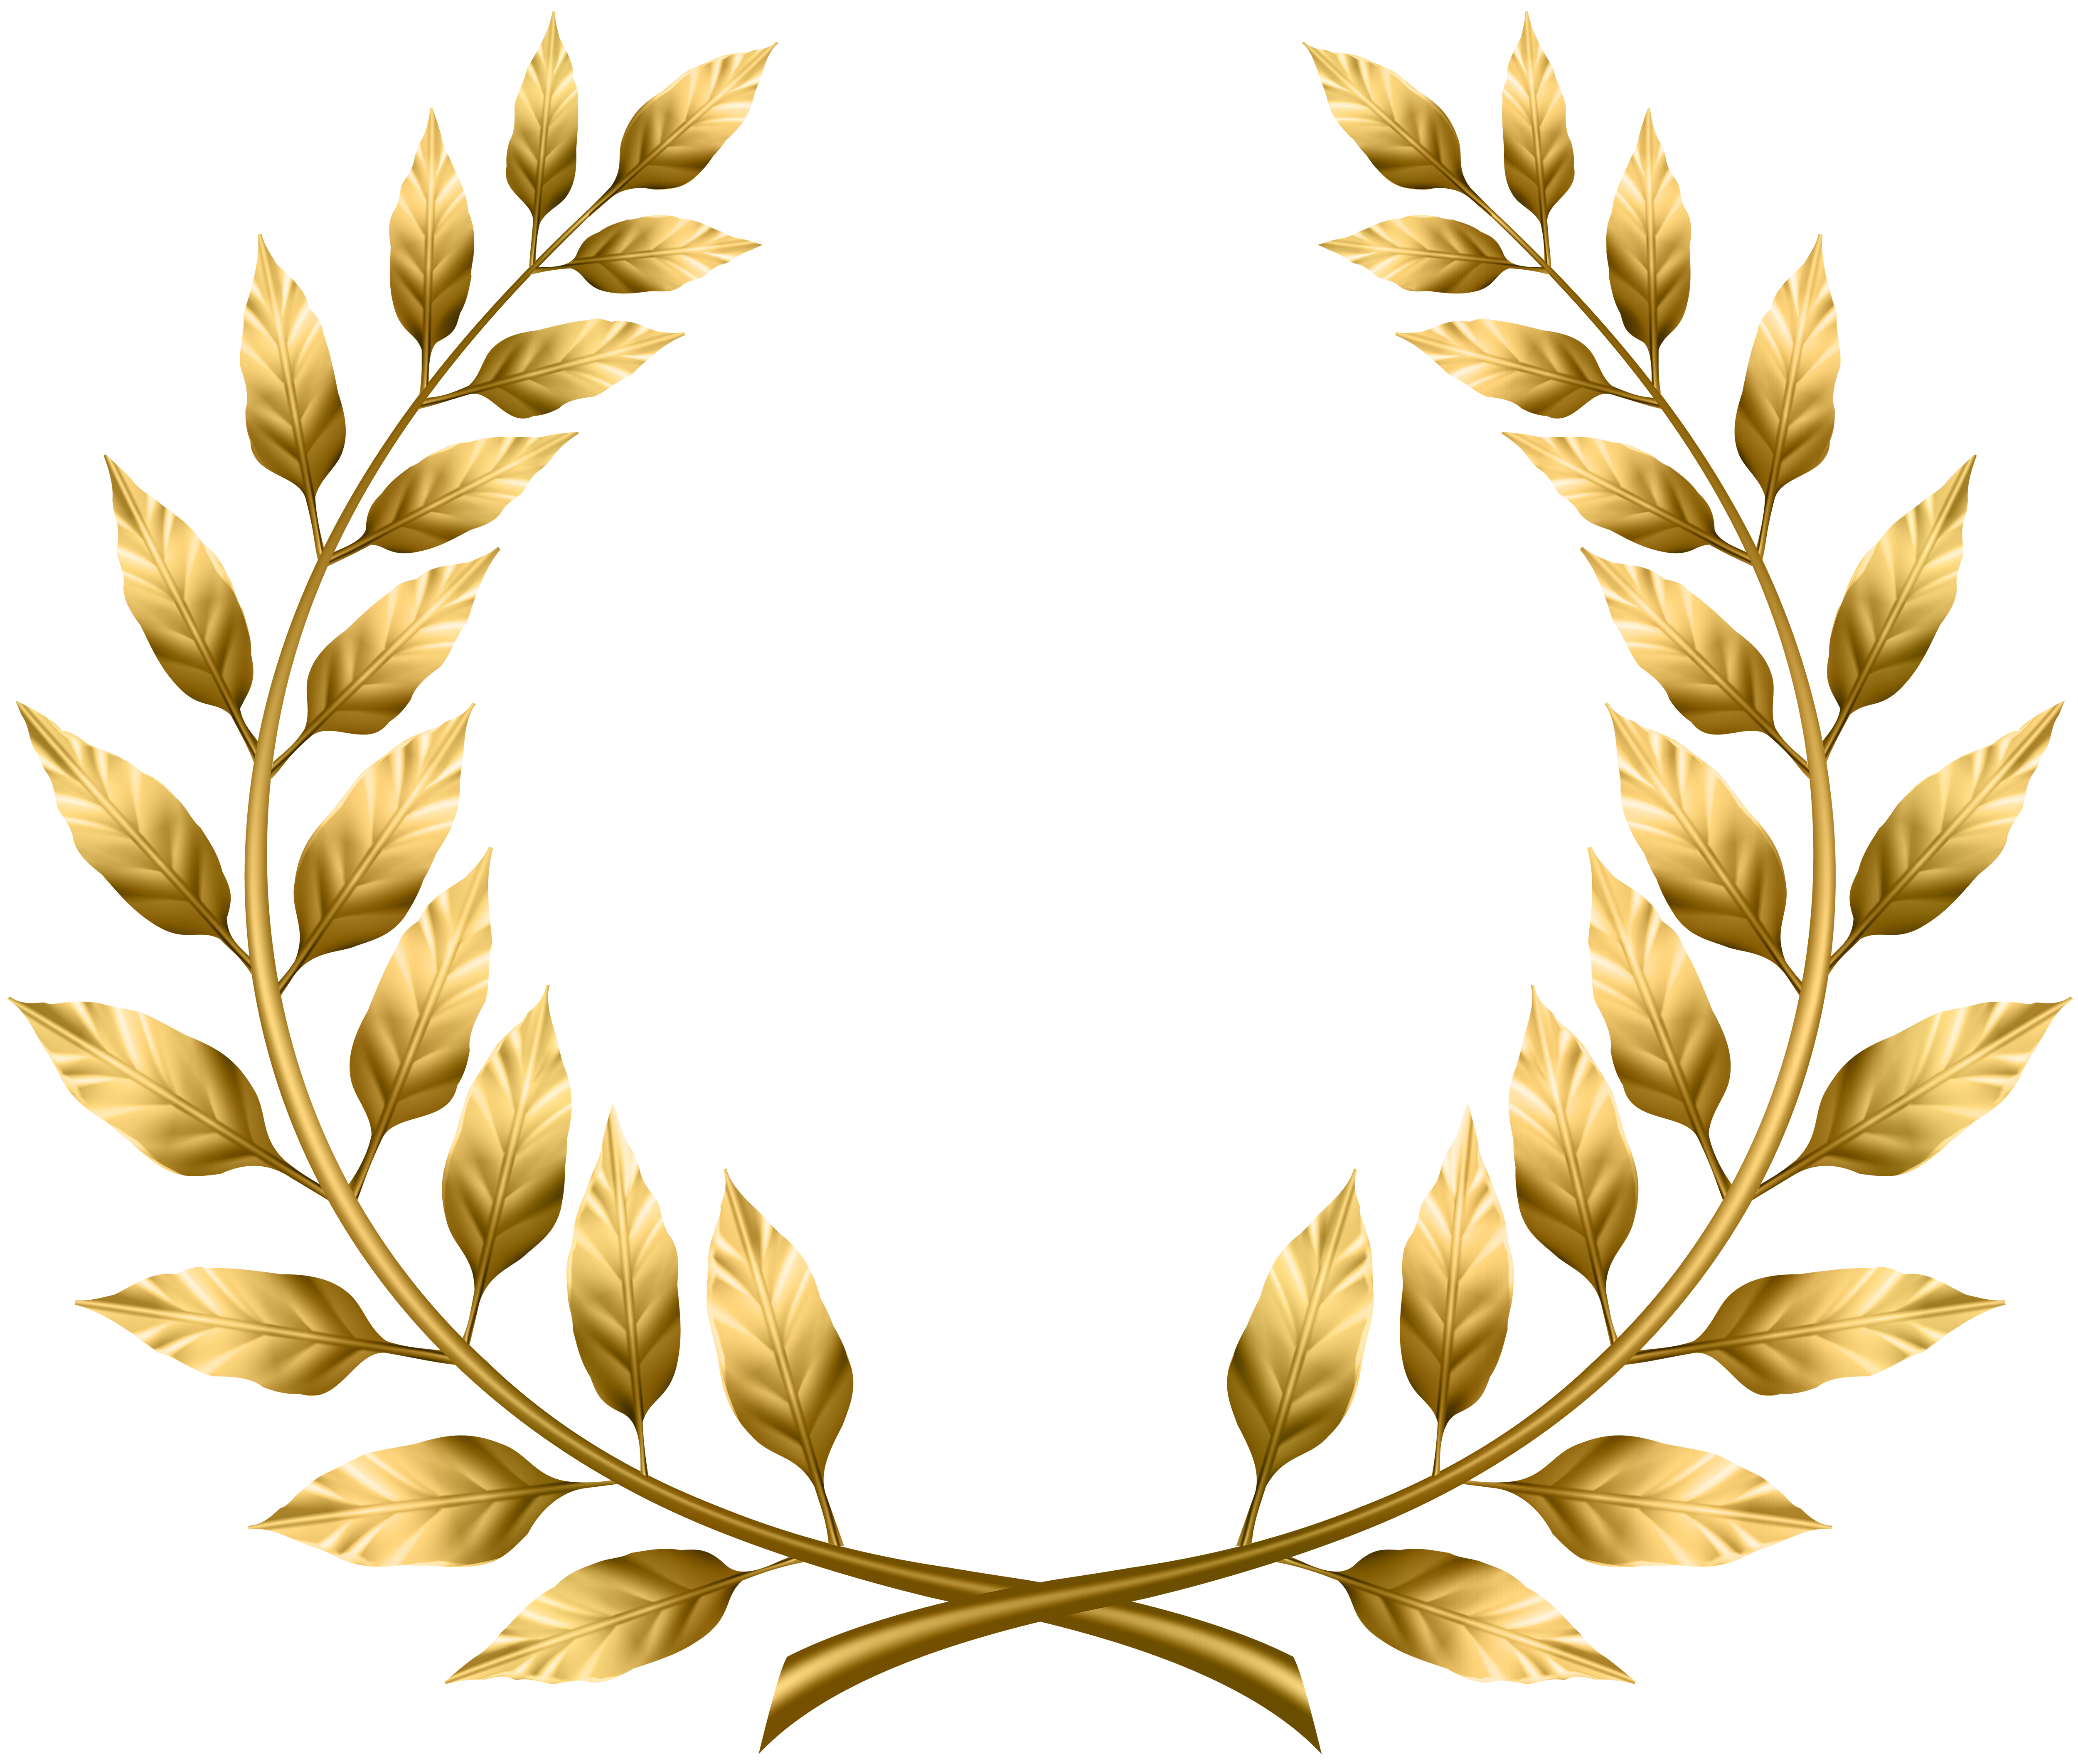 Laurel Wreath Transparent Png Clip Art Image Gallery Yopriceville High Quality Images And Transparent Png Free Clip Laurel Wreath Wreath Tattoo Art Images